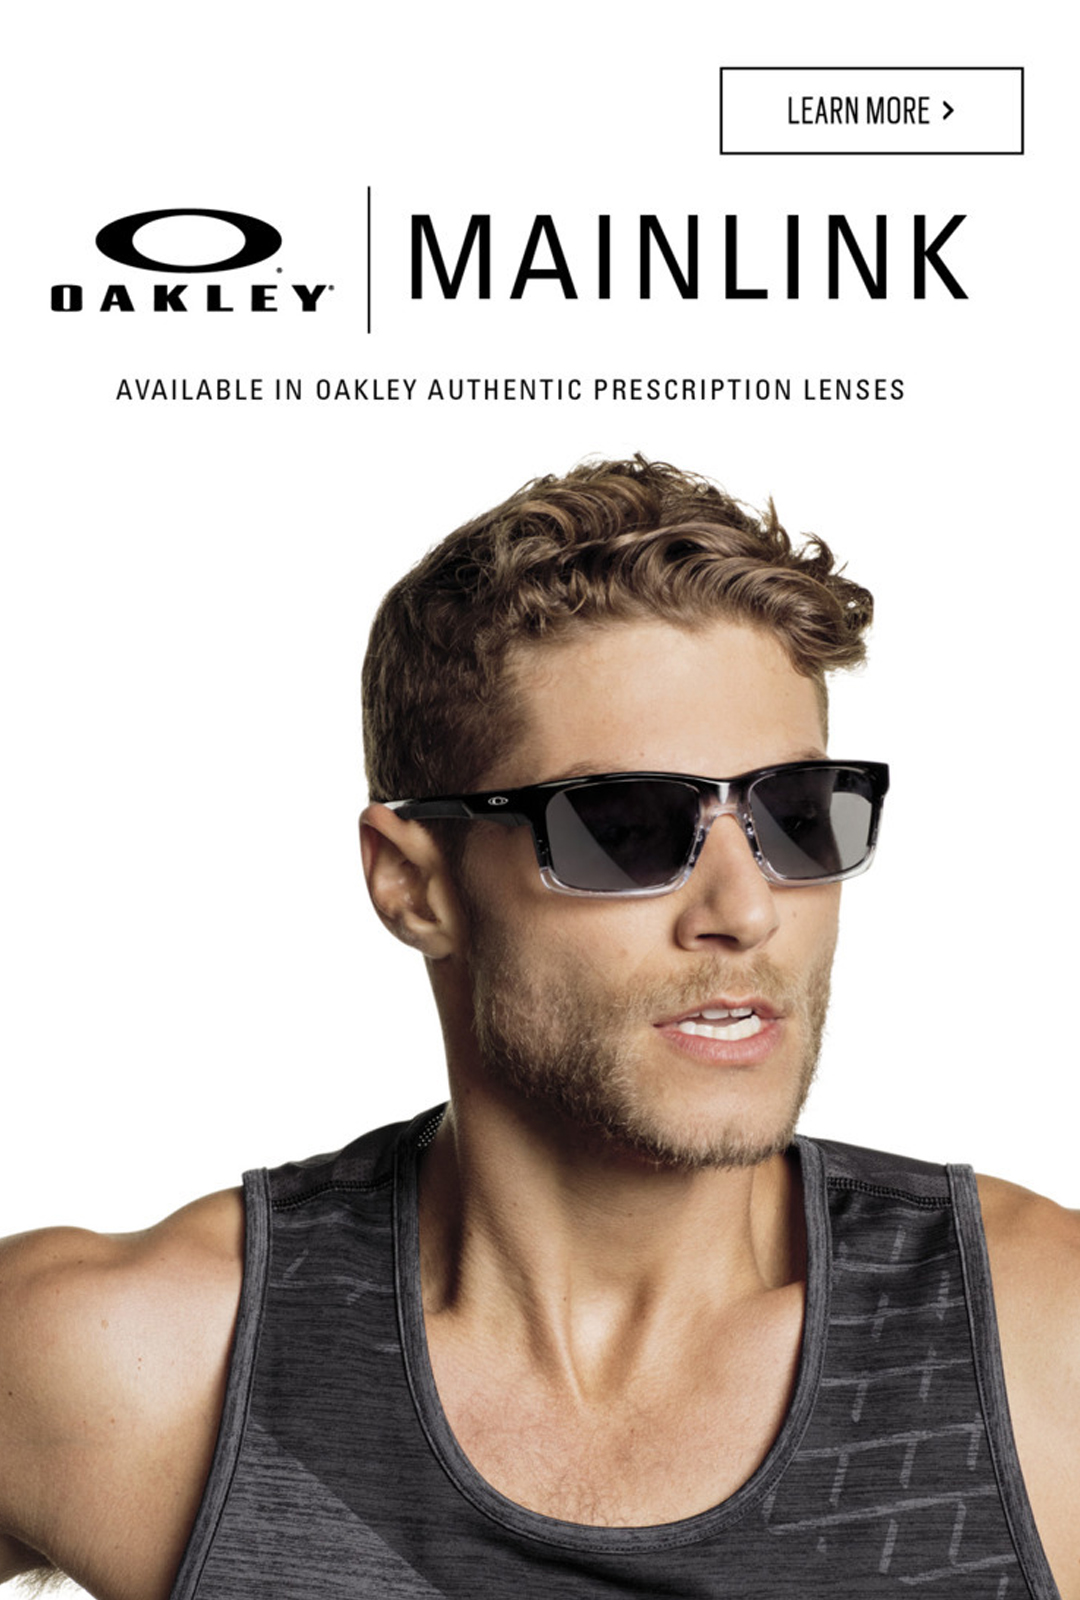 Oakley Prescription Mainlink Sunglasses